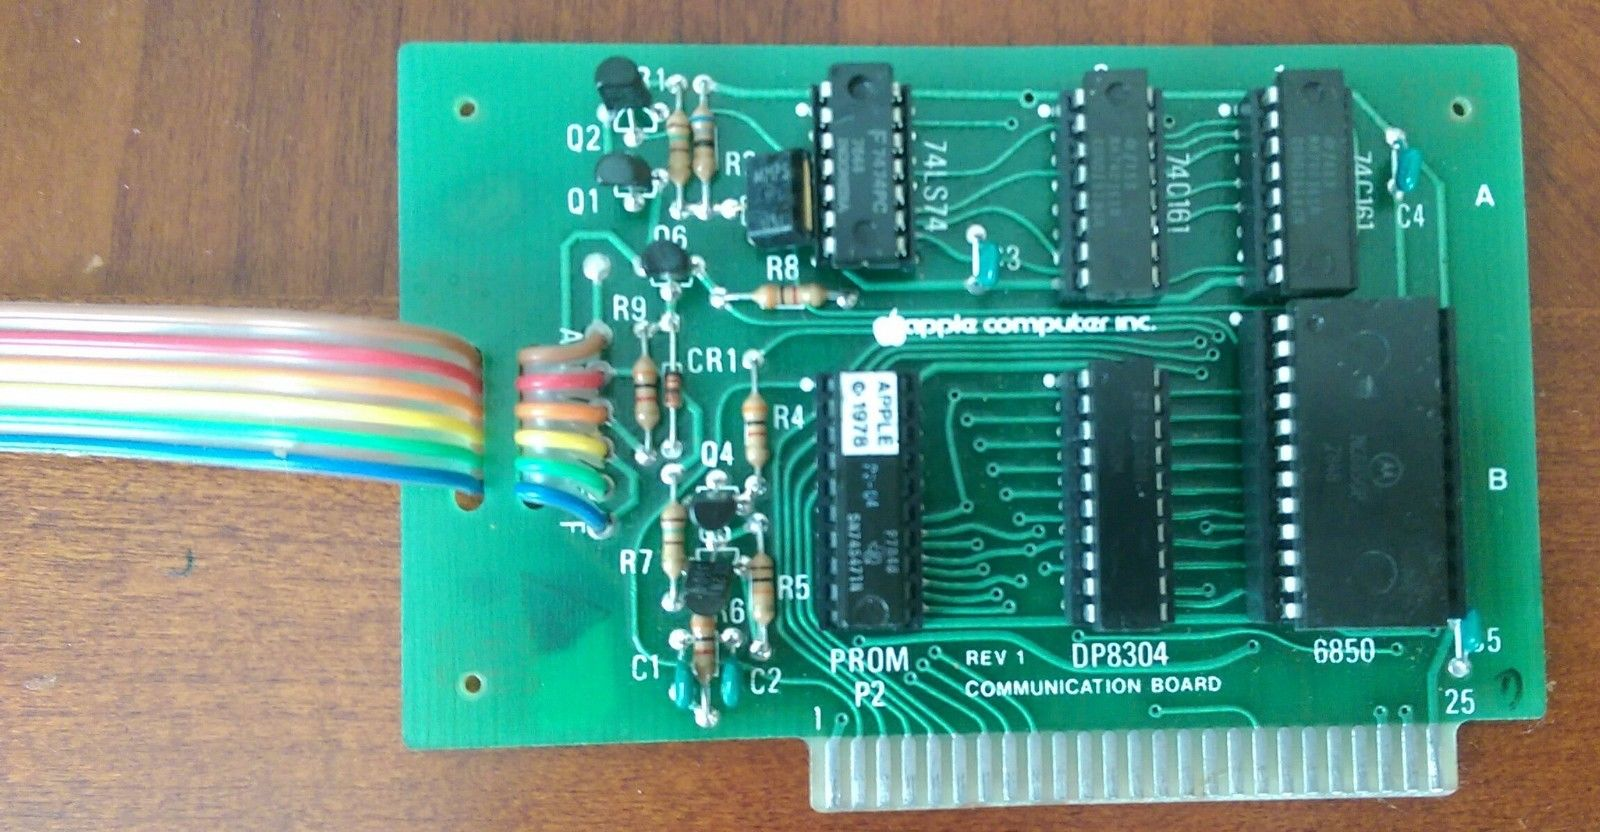 Apple ][ Rev 1 Communication Board ( Close Up )